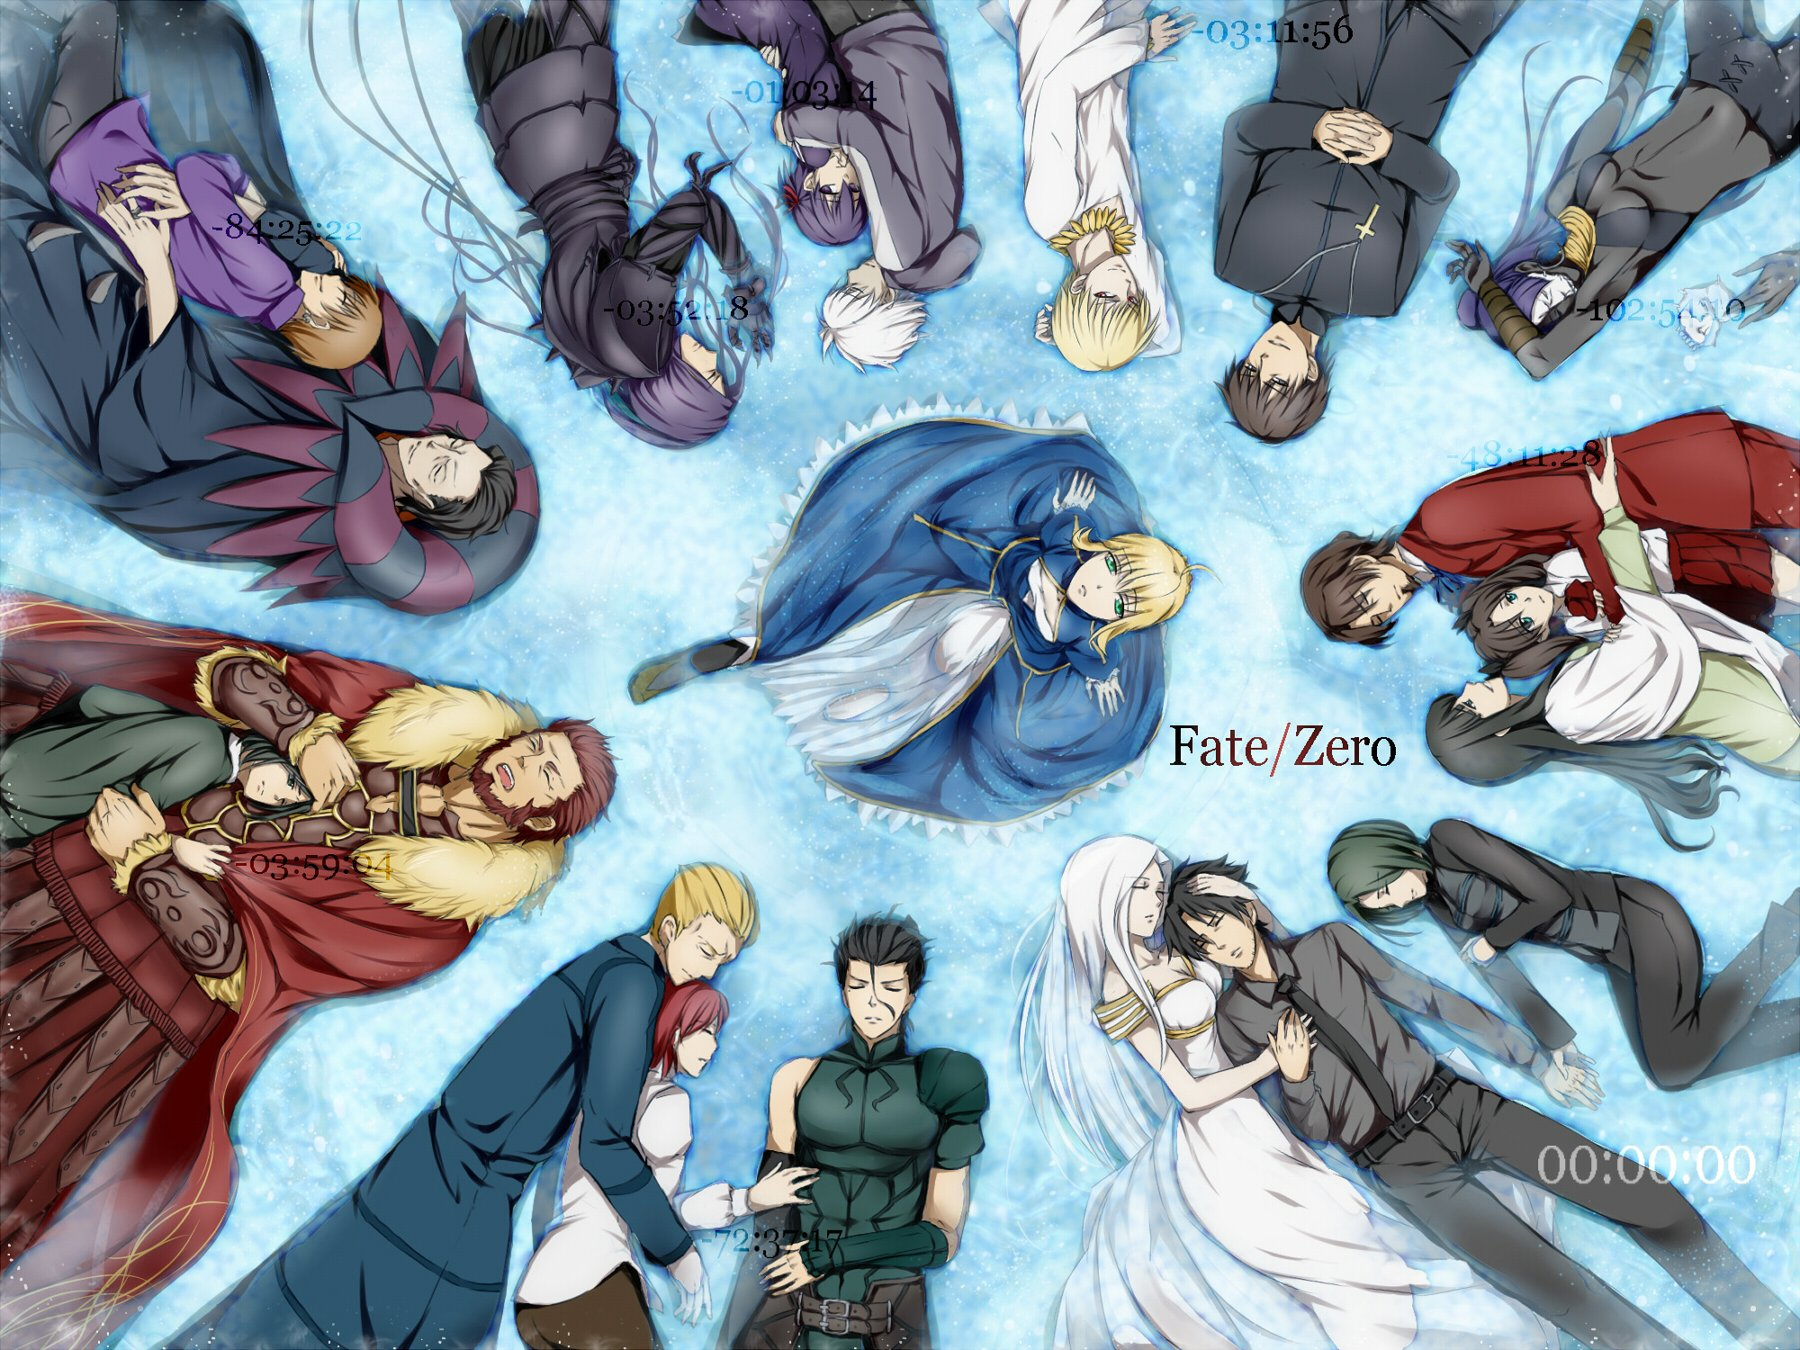 FateZero Computer Wallpapers Desktop Backgrounds 1800x1350 ID 1800x1350